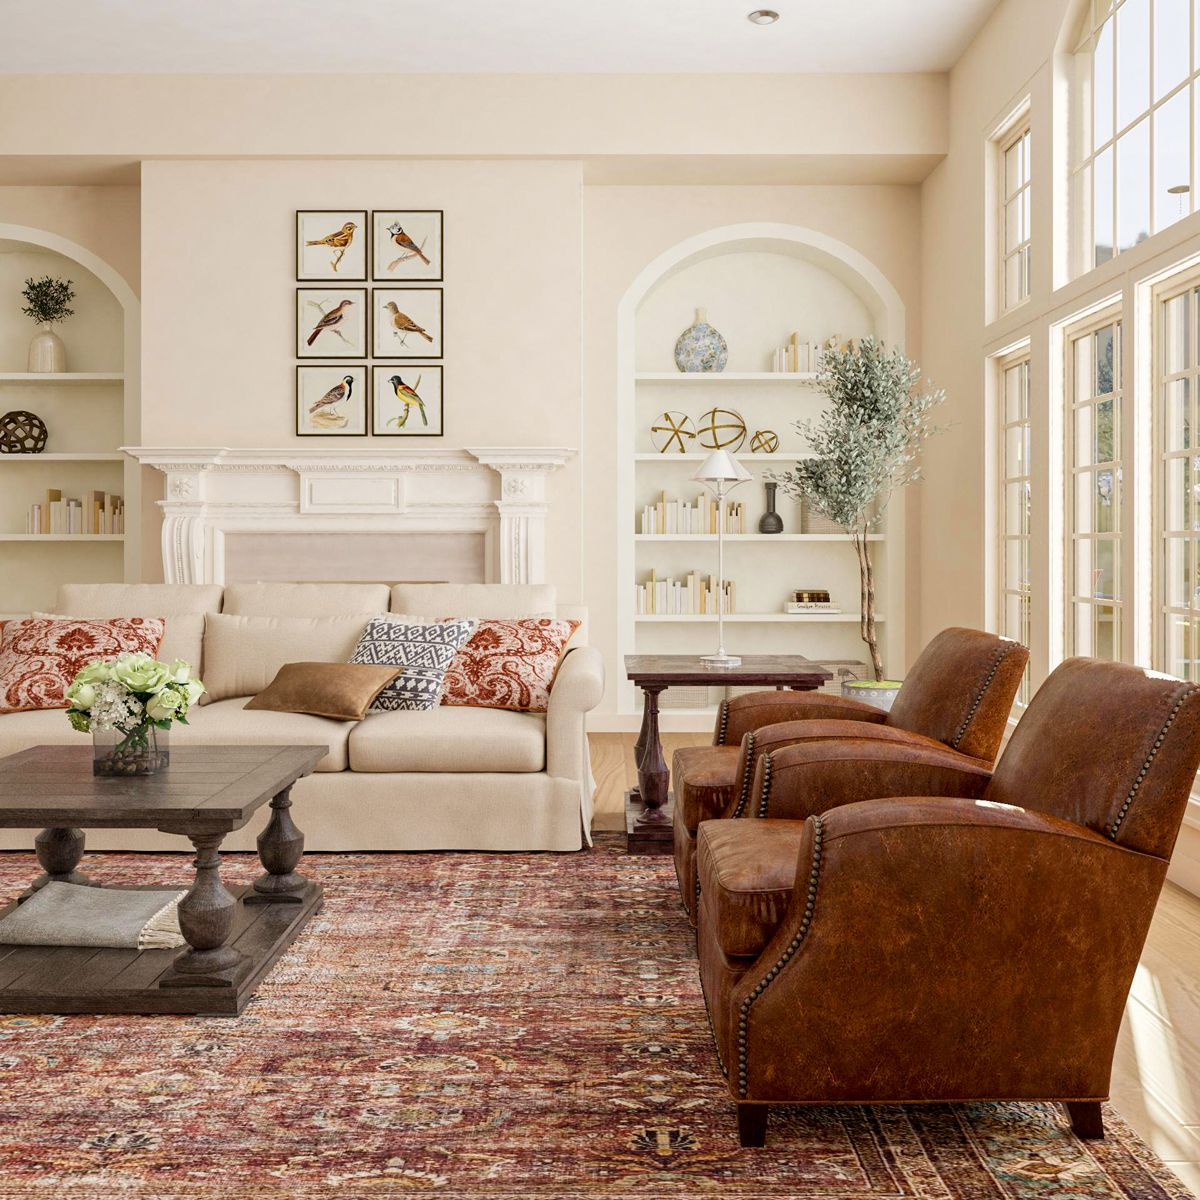 Traditional Comfortable Design Is The New Trend On The Block Modsy Blog In 2021 Traditional Style Living Room Traditional Design Living Room Traditional Living Room Traditional living room decorating